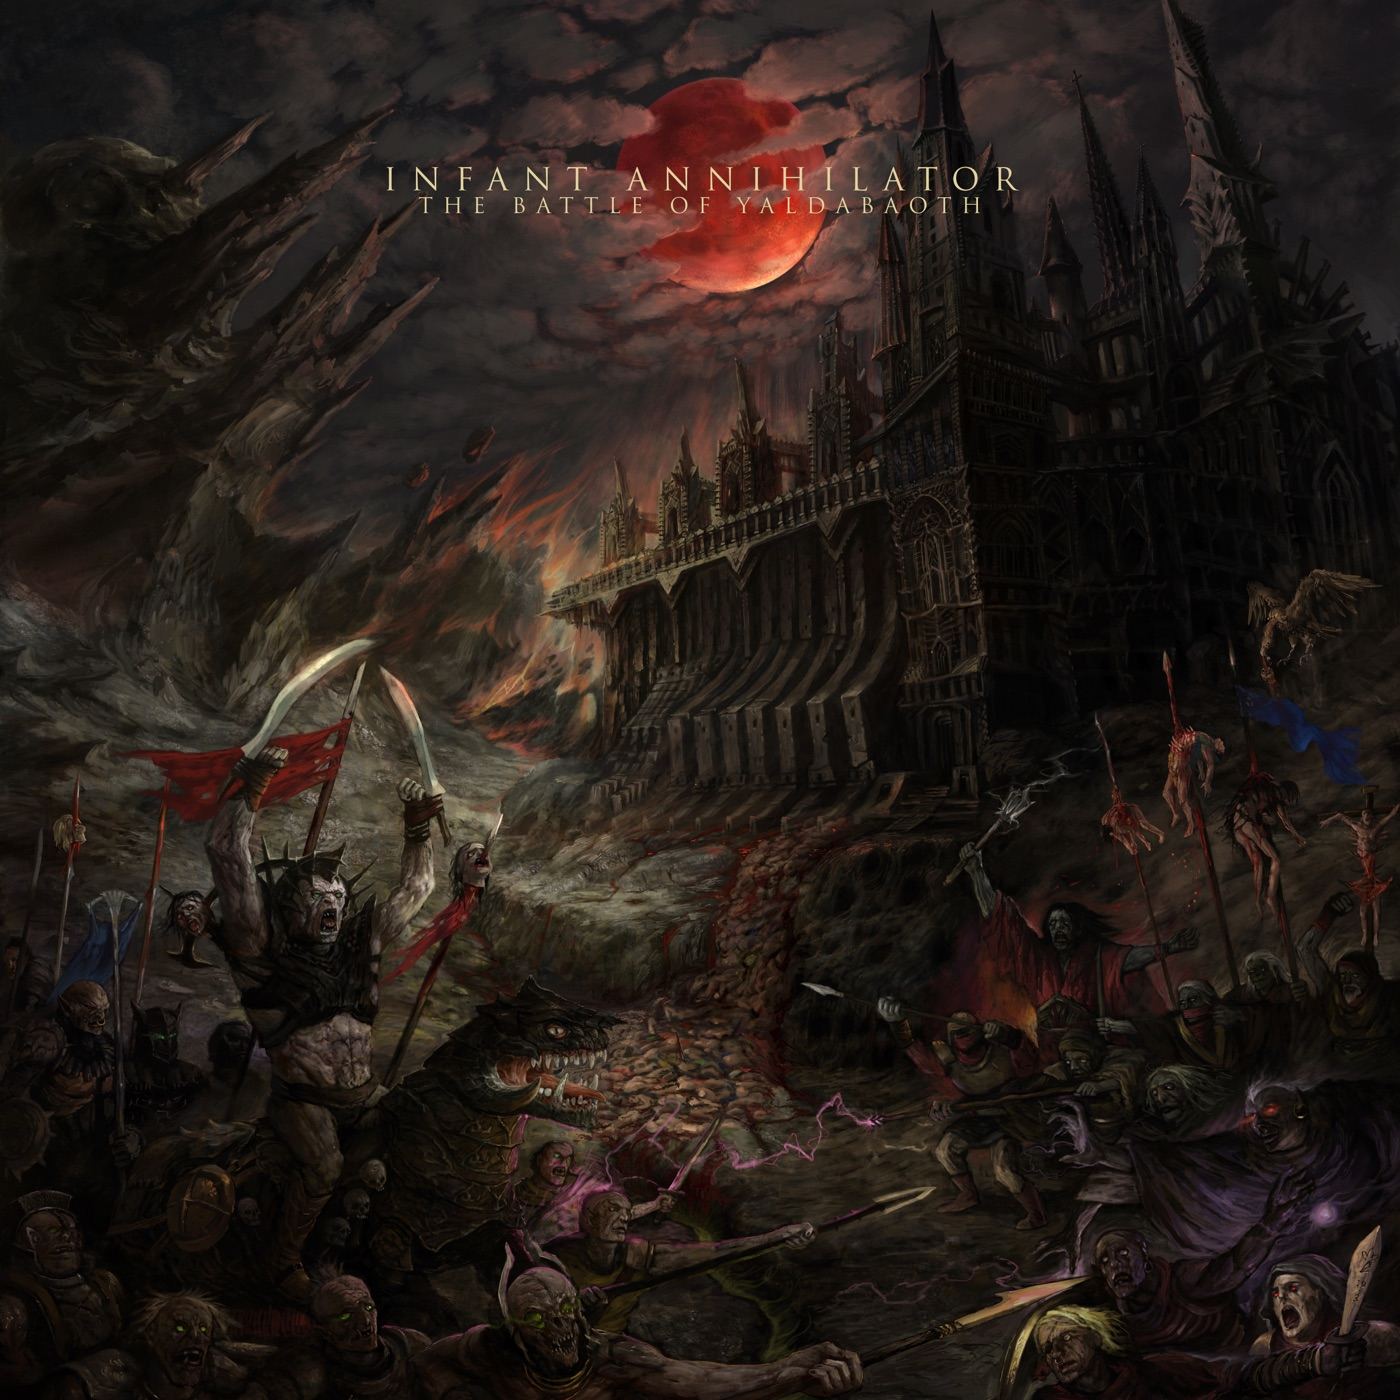 Infant Annihilator - The Battle of Yaldabaoth (2019)